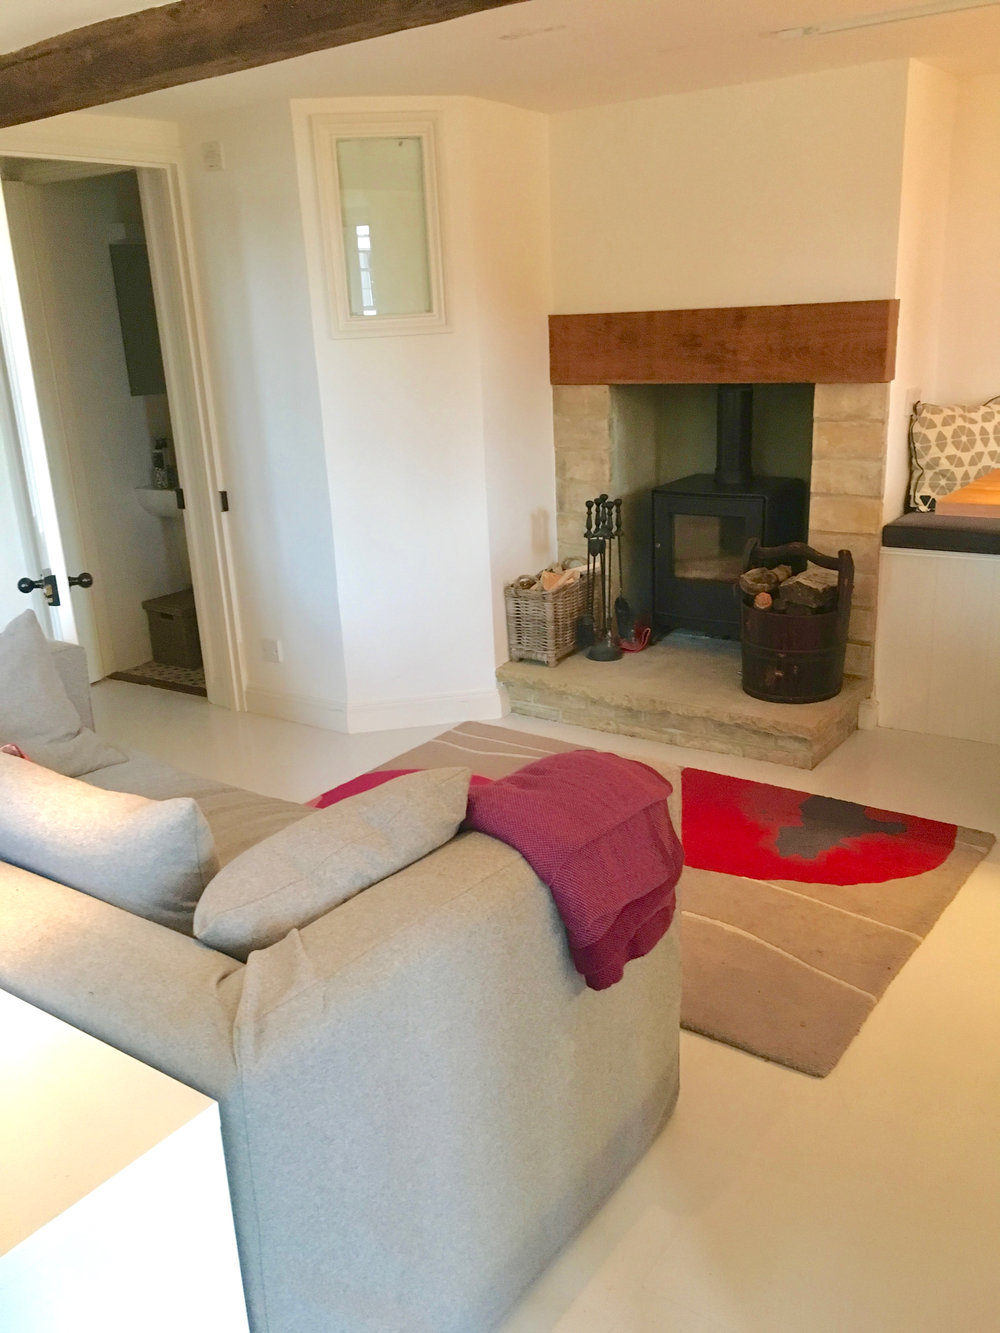 Sofa and woodburner